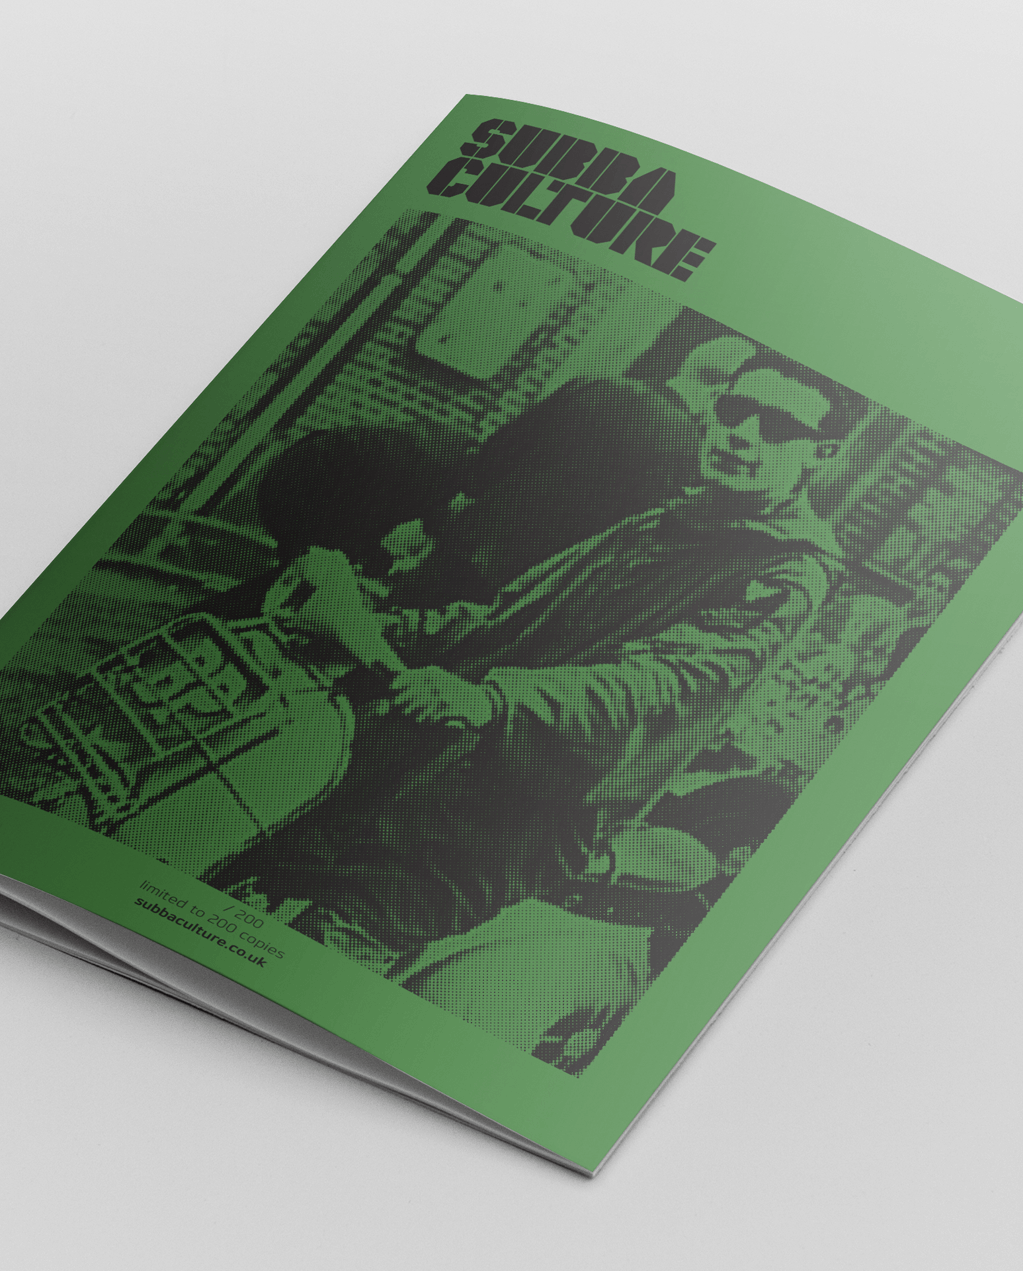 Image of Subbaculture Issue 3